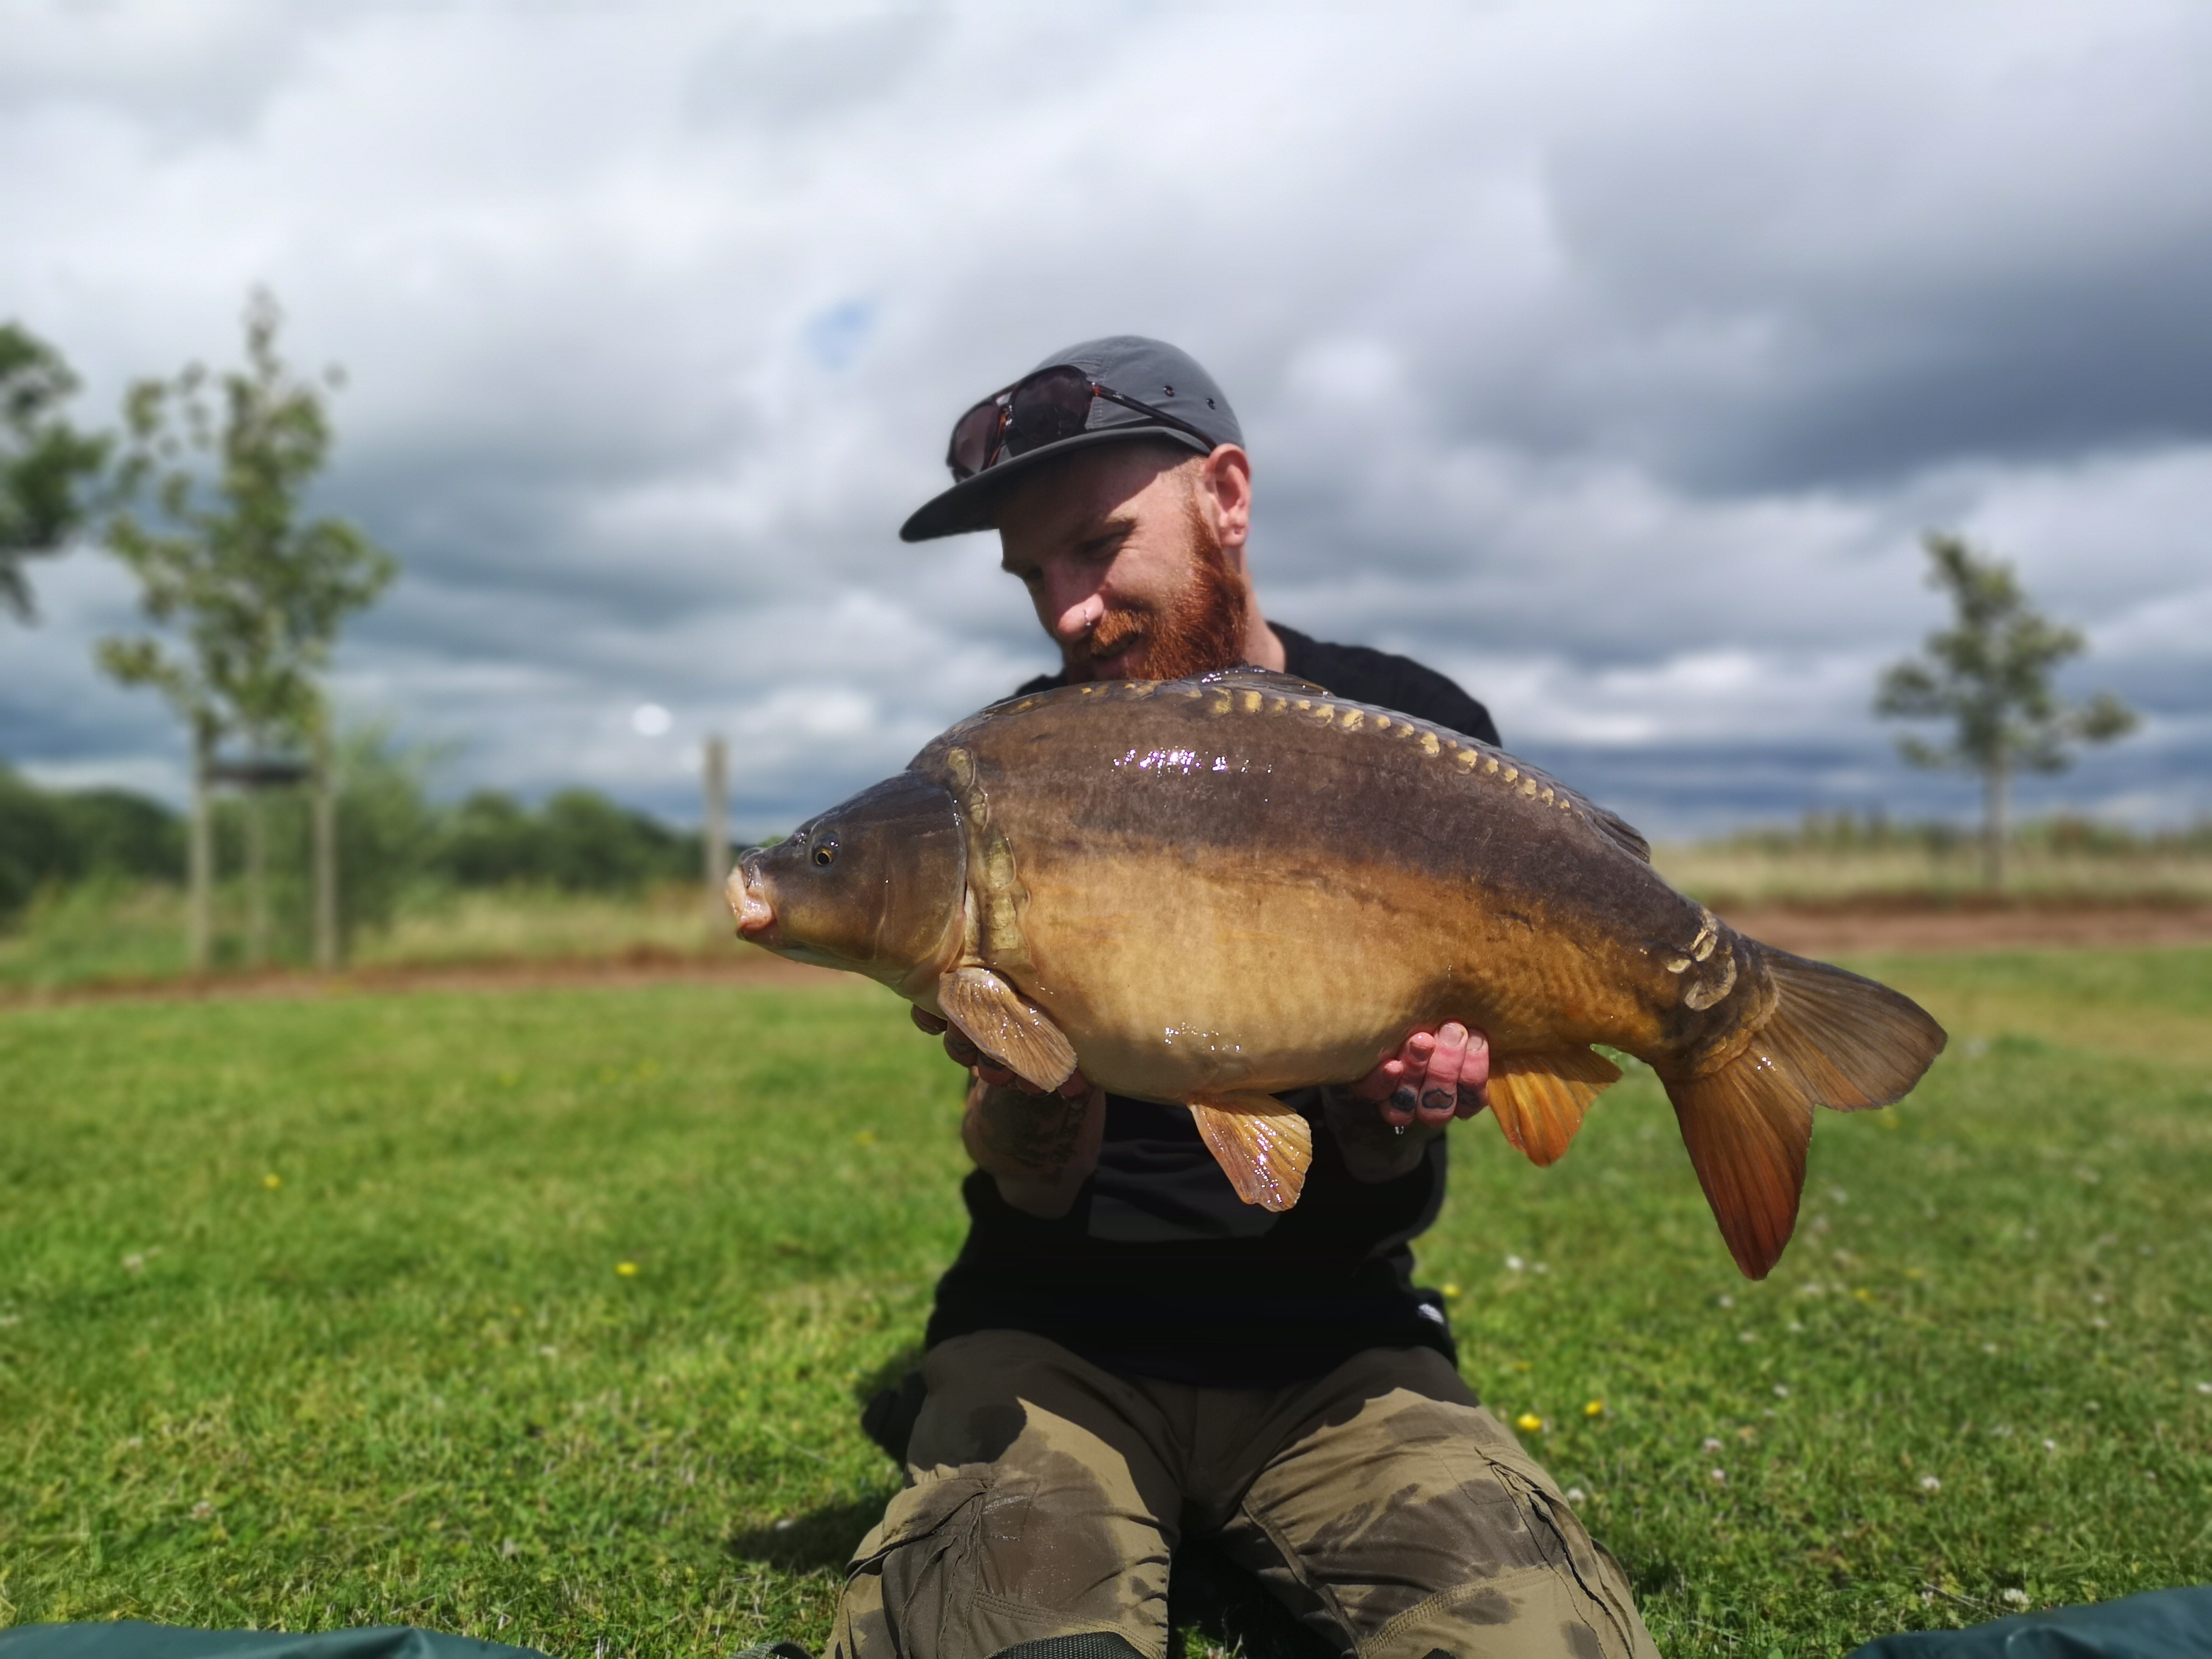 20-06 caught on Boilie